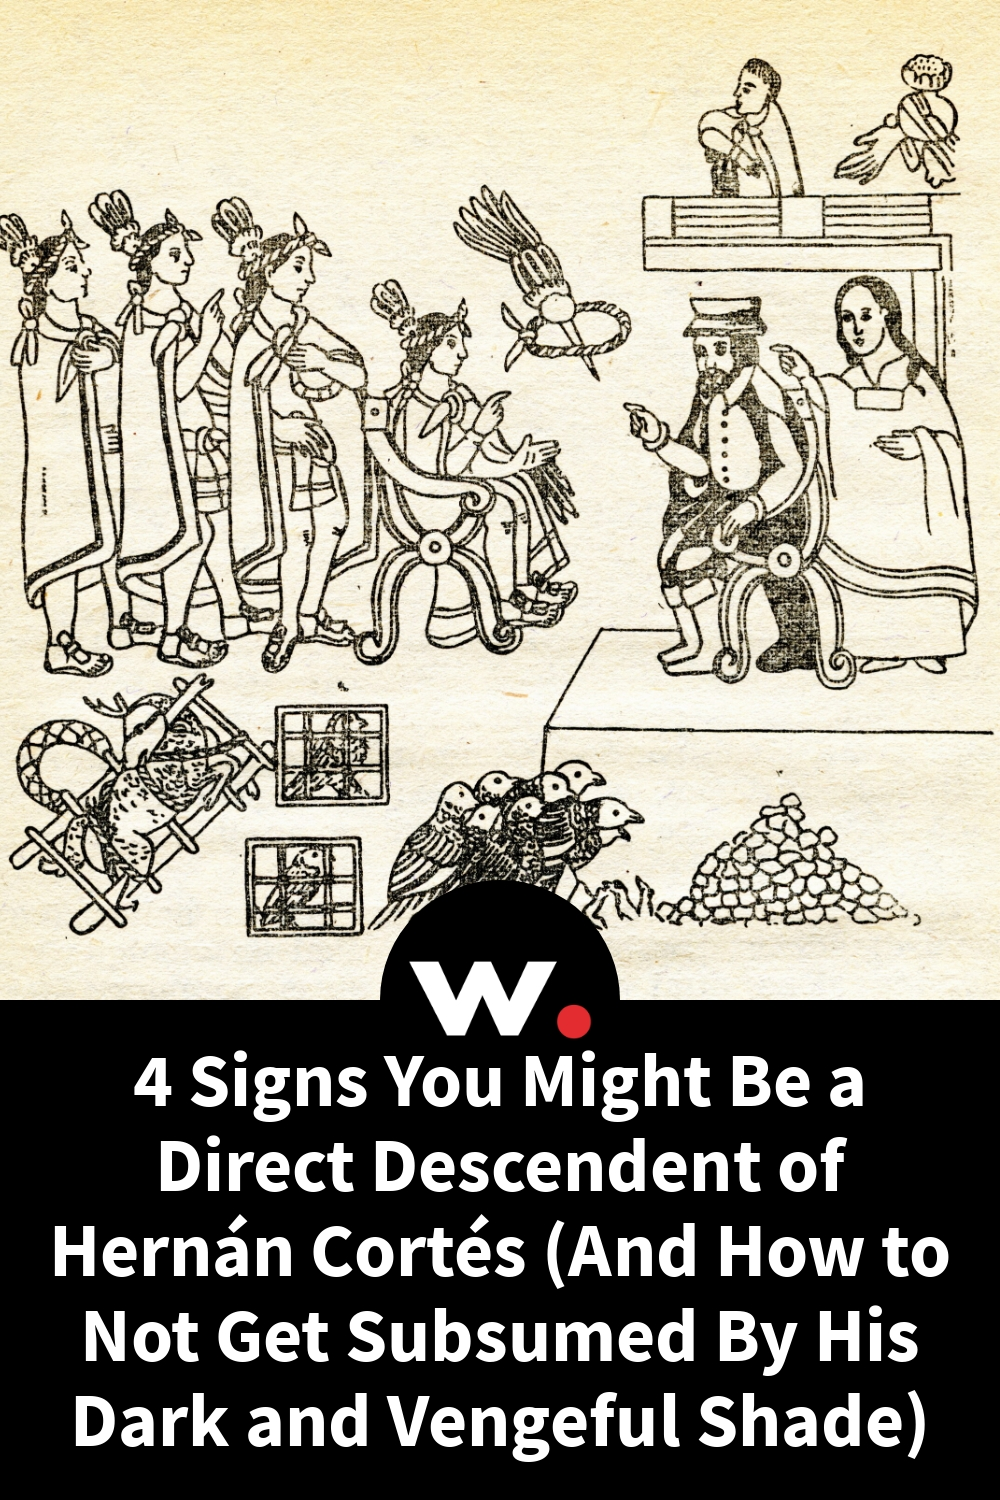 4 Signs You Might Be a Direct Descendent of Hernán Cortés (And How to Not Get Subsumed By His Dark and Vengeful Shade)